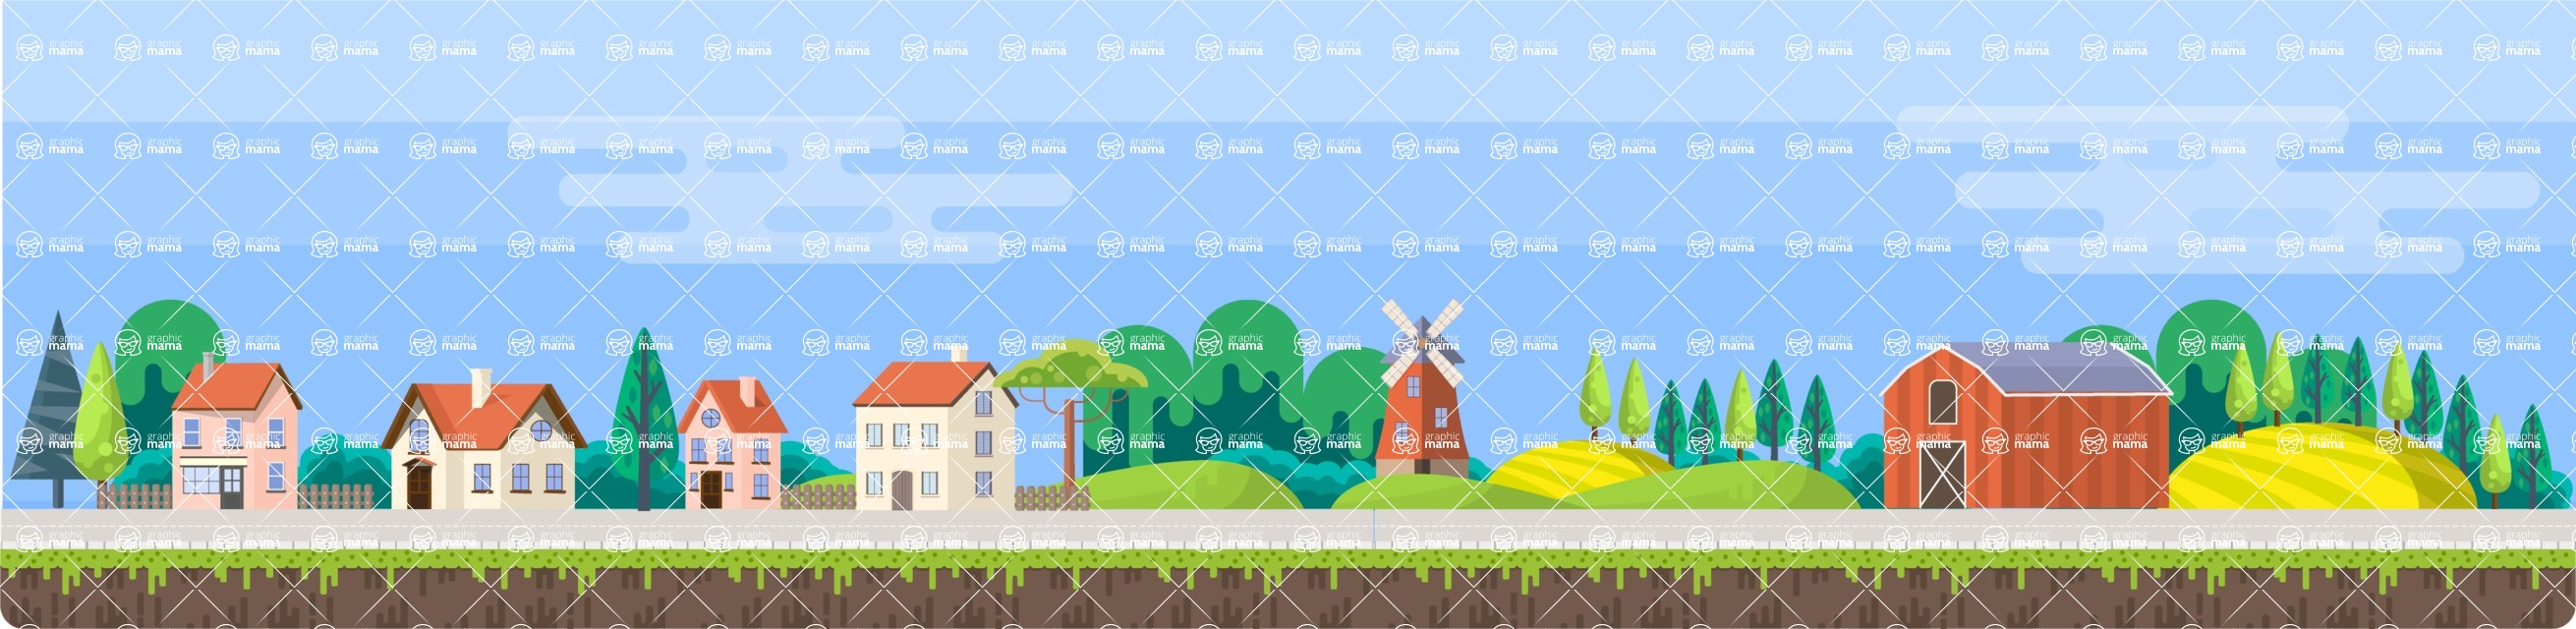 Background Vector Creation pack. A rich collection of flat vector elements for nature landscapes, city skylines, futuristic towns, fantastic scenes.  - Backgrounds 56